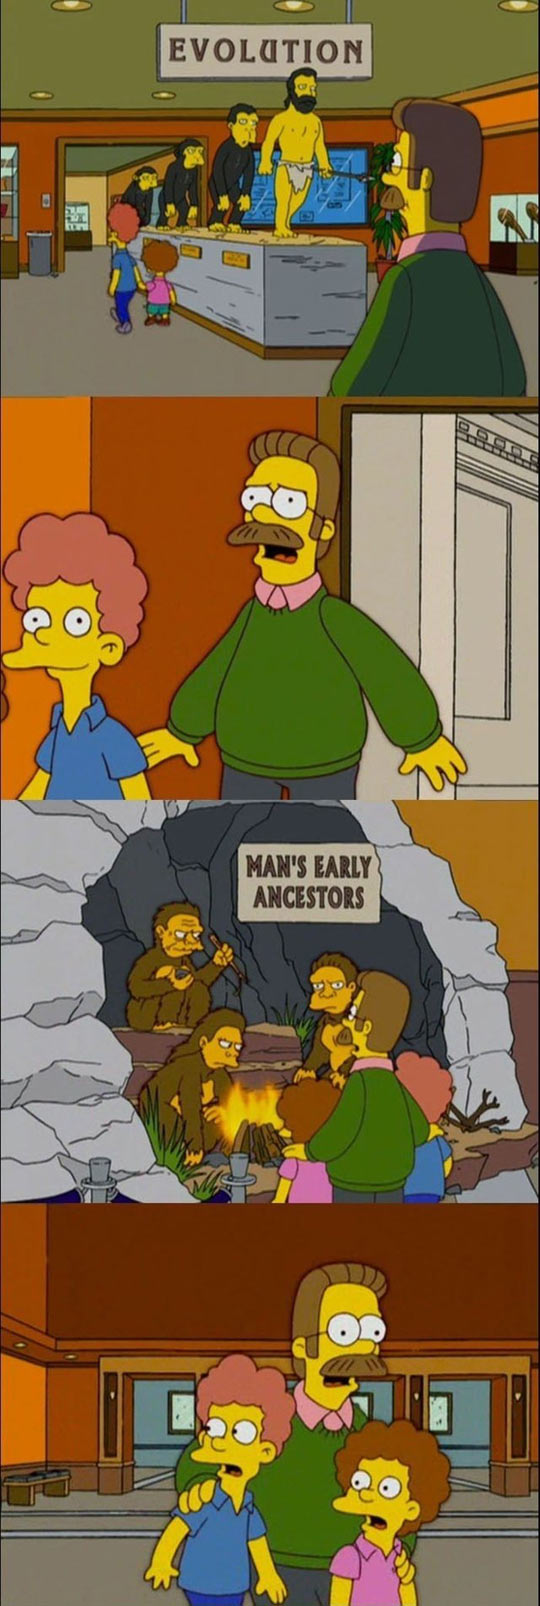 The Flanders family goes to the museum...